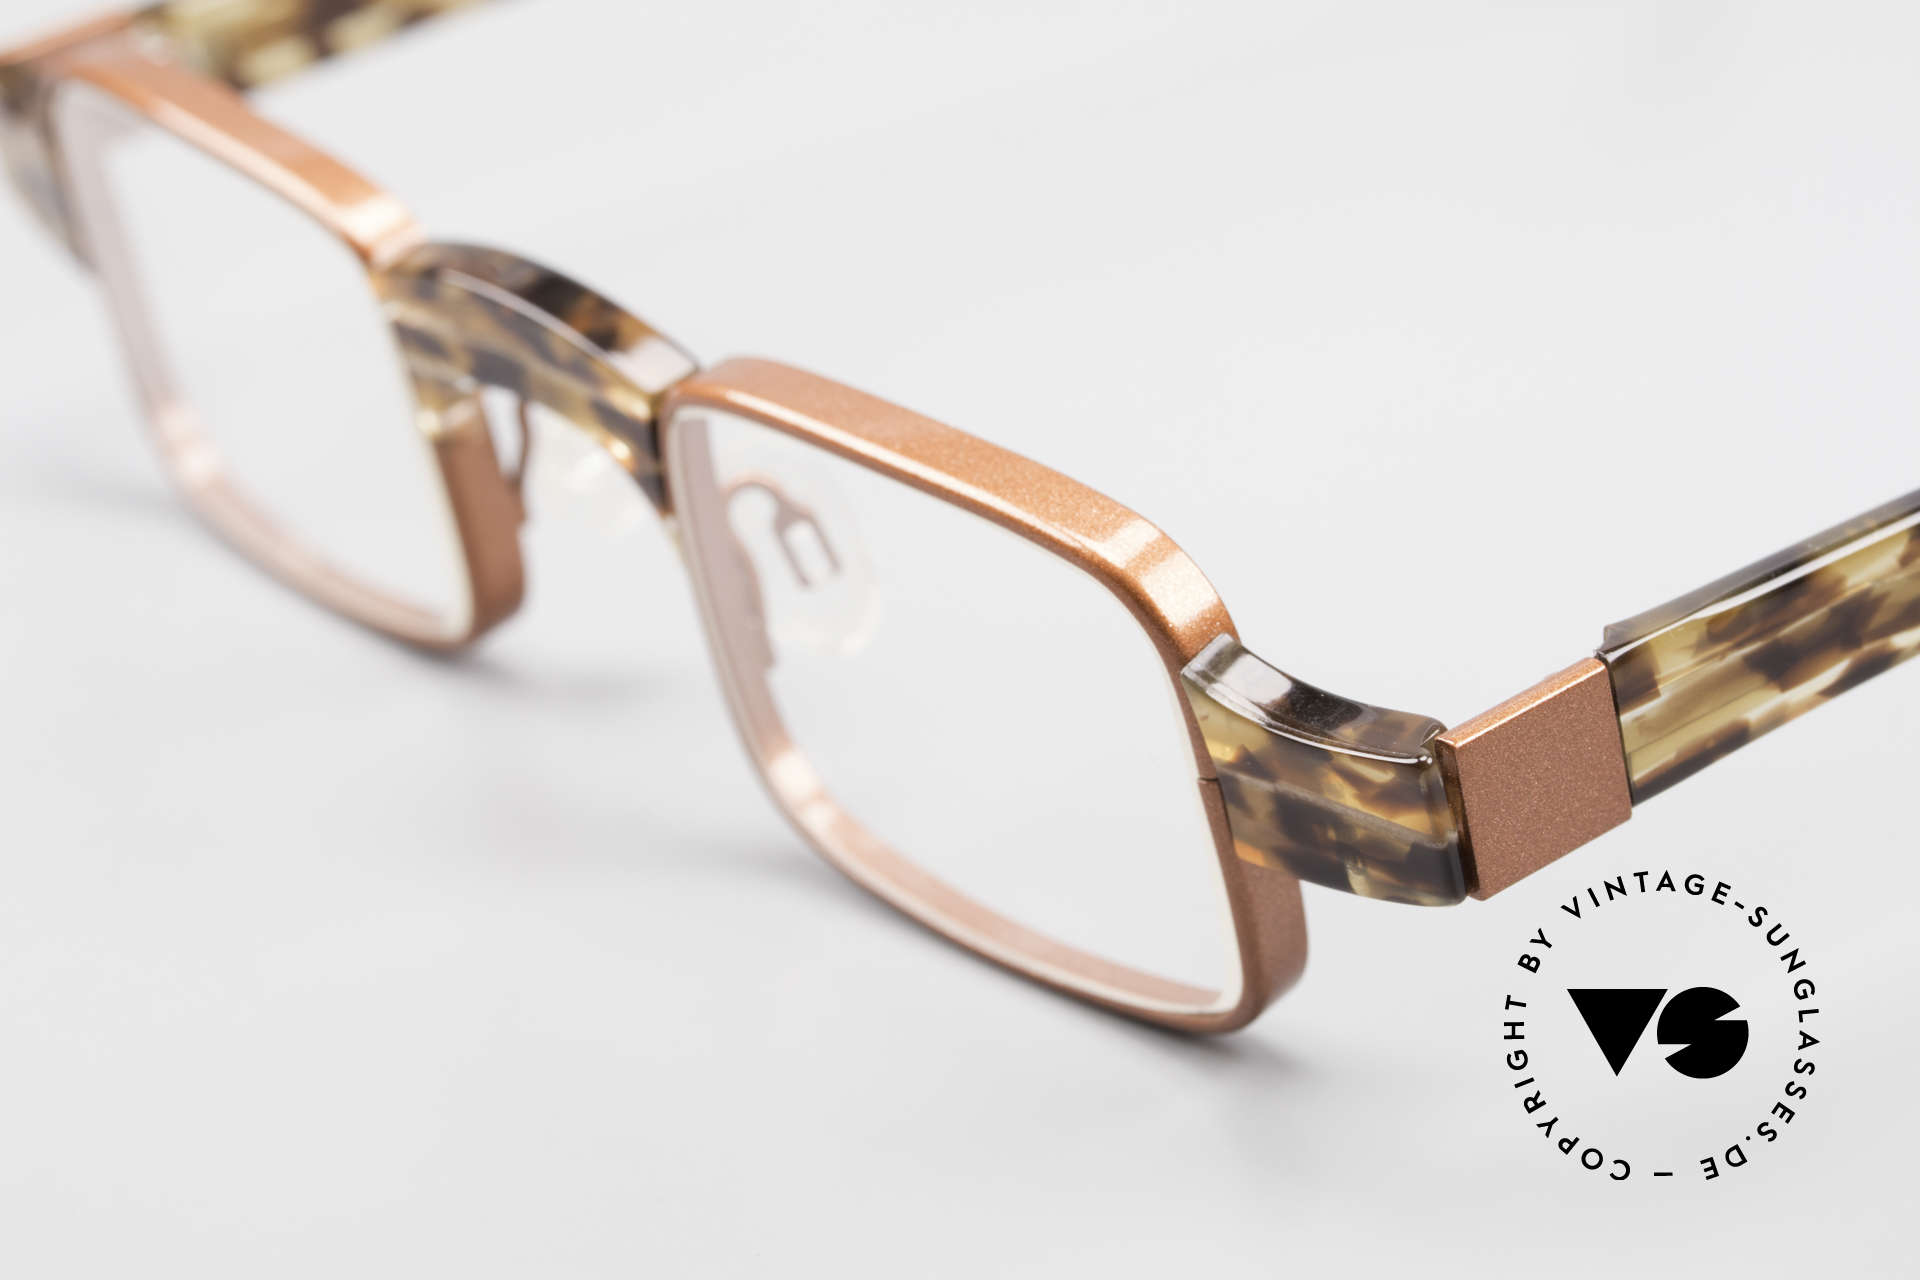 Theo Belgium Aphrodite Vintage Ladies Designer Specs, made for the avant-garde, individualists & trend-setters, Made for Women